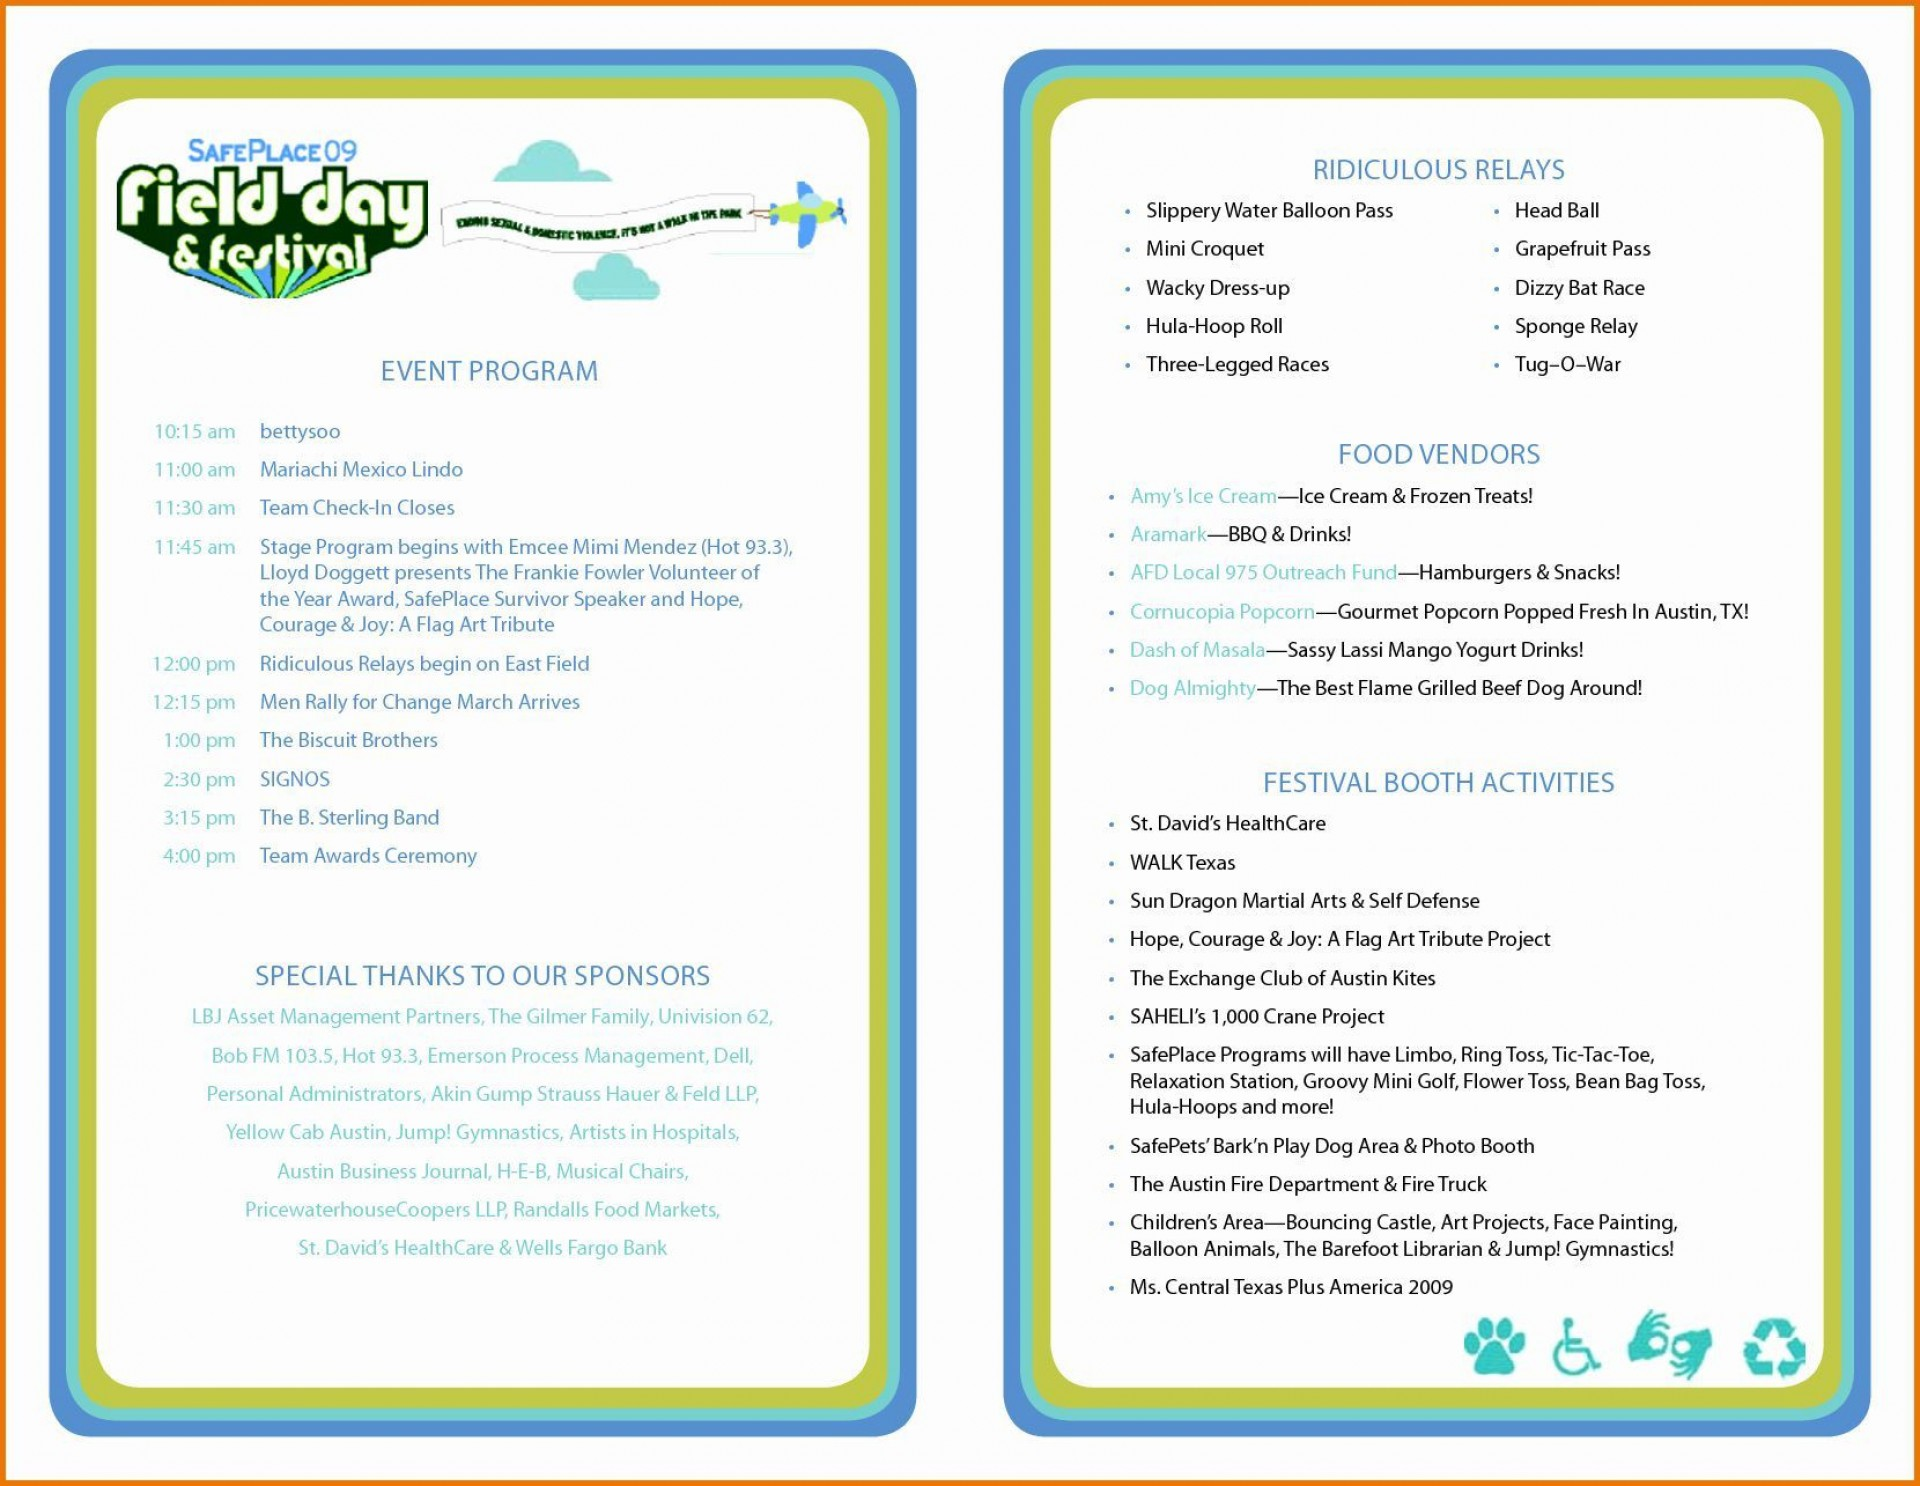 005 Top Excel Order Form Template Highest Clarity  Free With Drop Down List Food1920